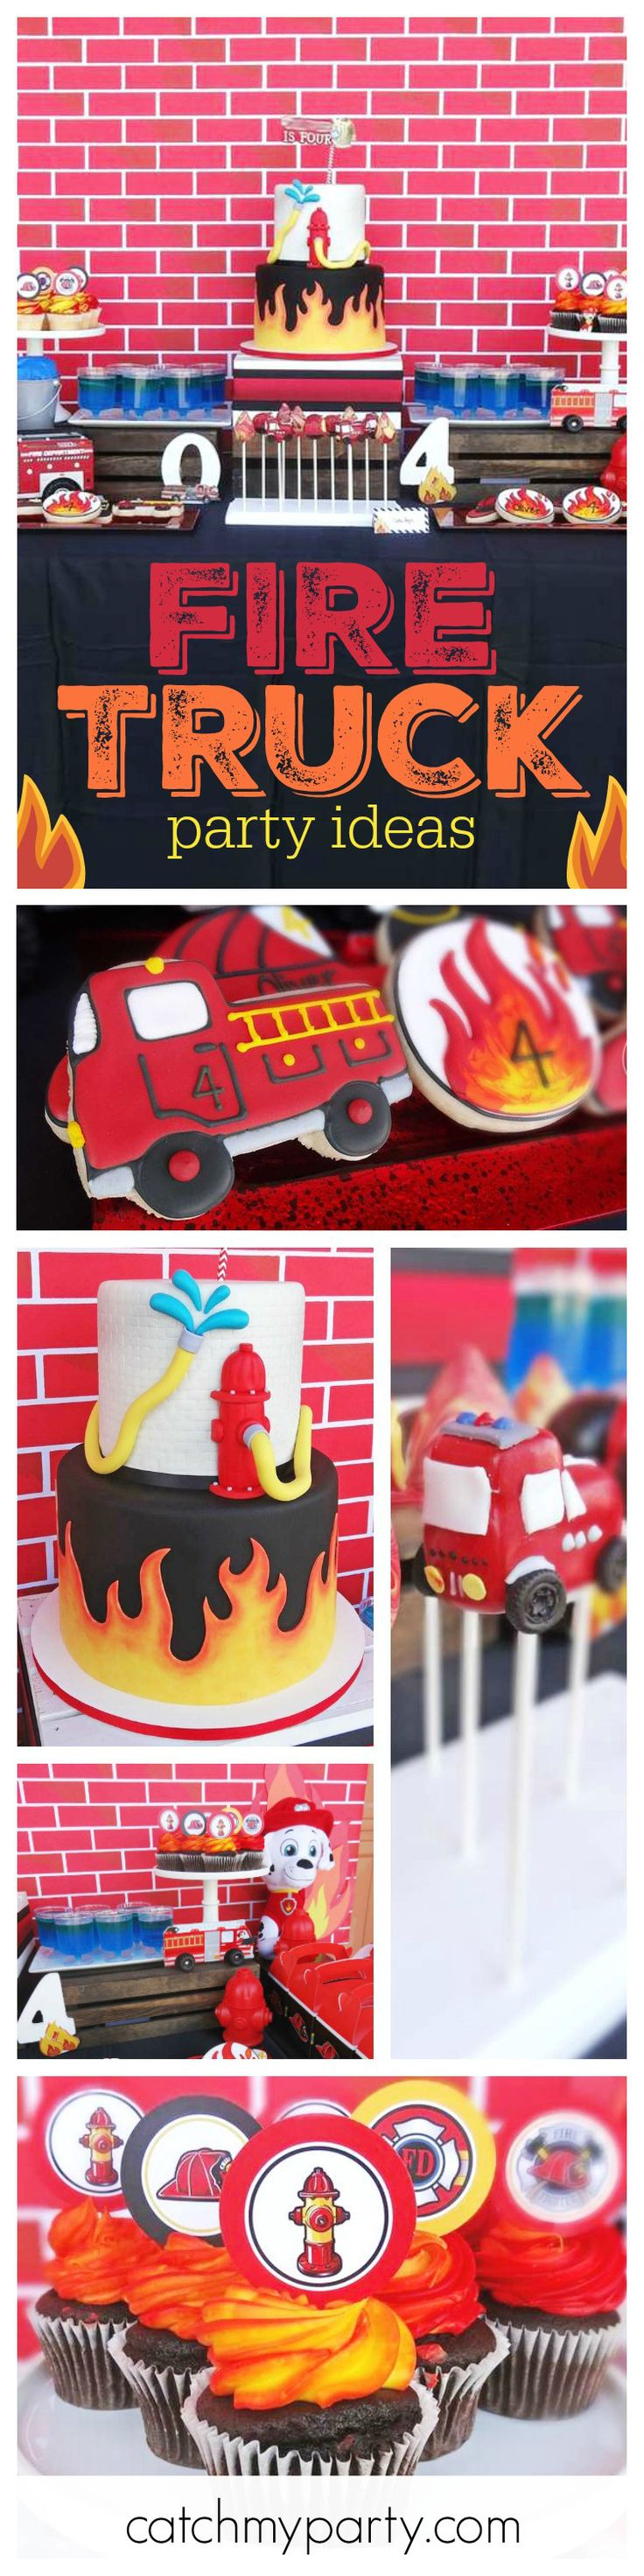 198 best images about Firetruck Party Ideas – Fire Truck Party Invitations